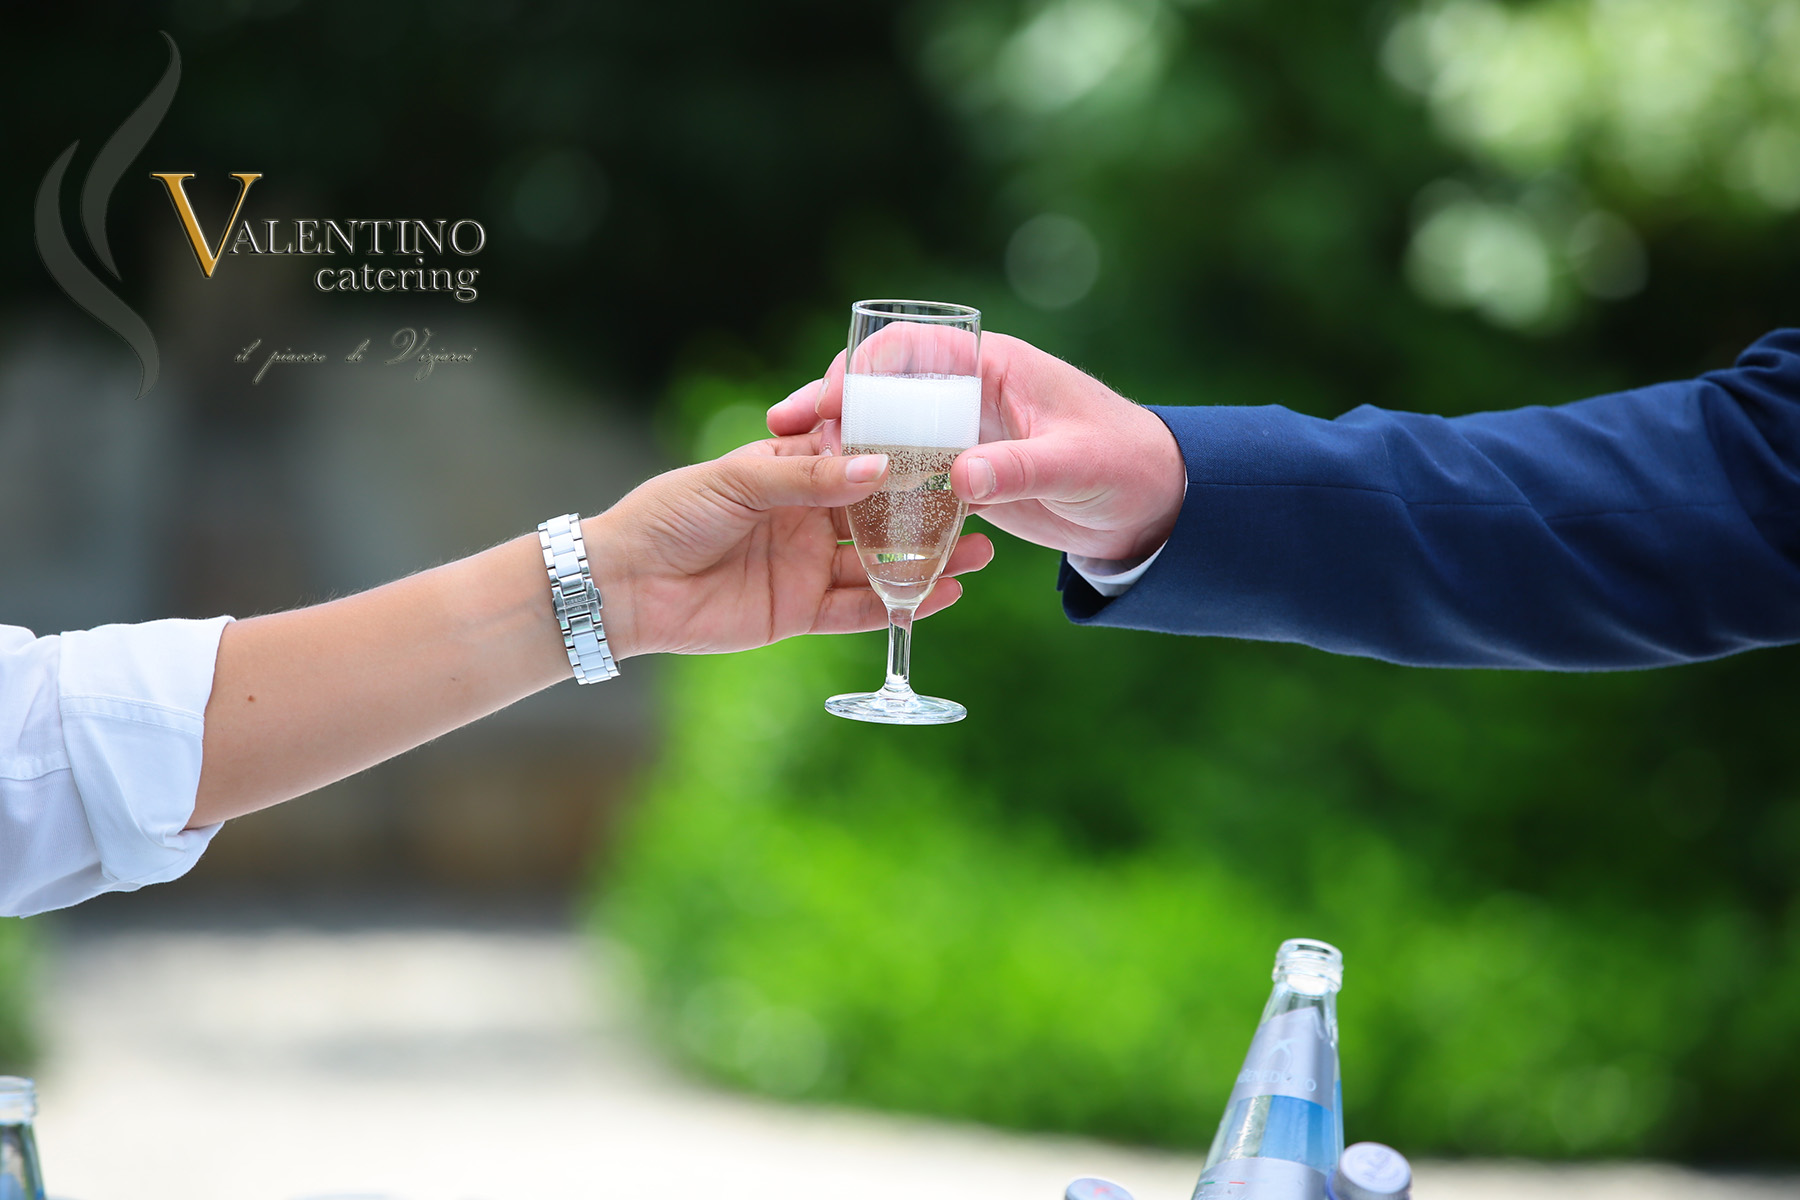 Catering Siracusa – Valentino Catering